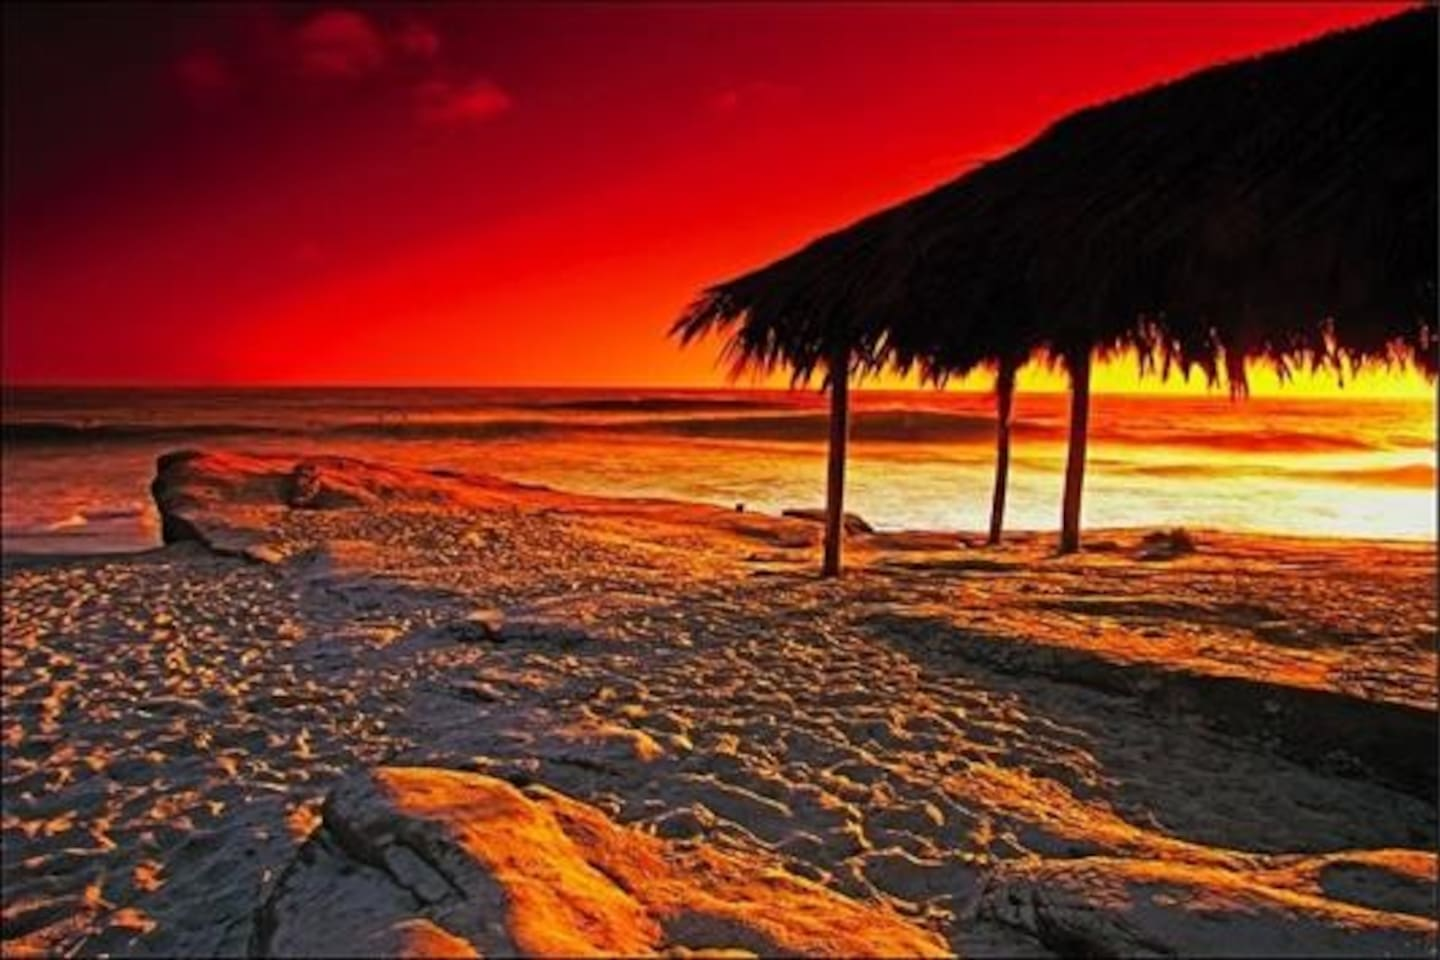 Local beach: Windansea. World-renowned. Historical Designation. One of the most beautiful beaches we know of. Its sacred here. Magic. Sunsets usually right at the end of Nautilus-(depending on season)